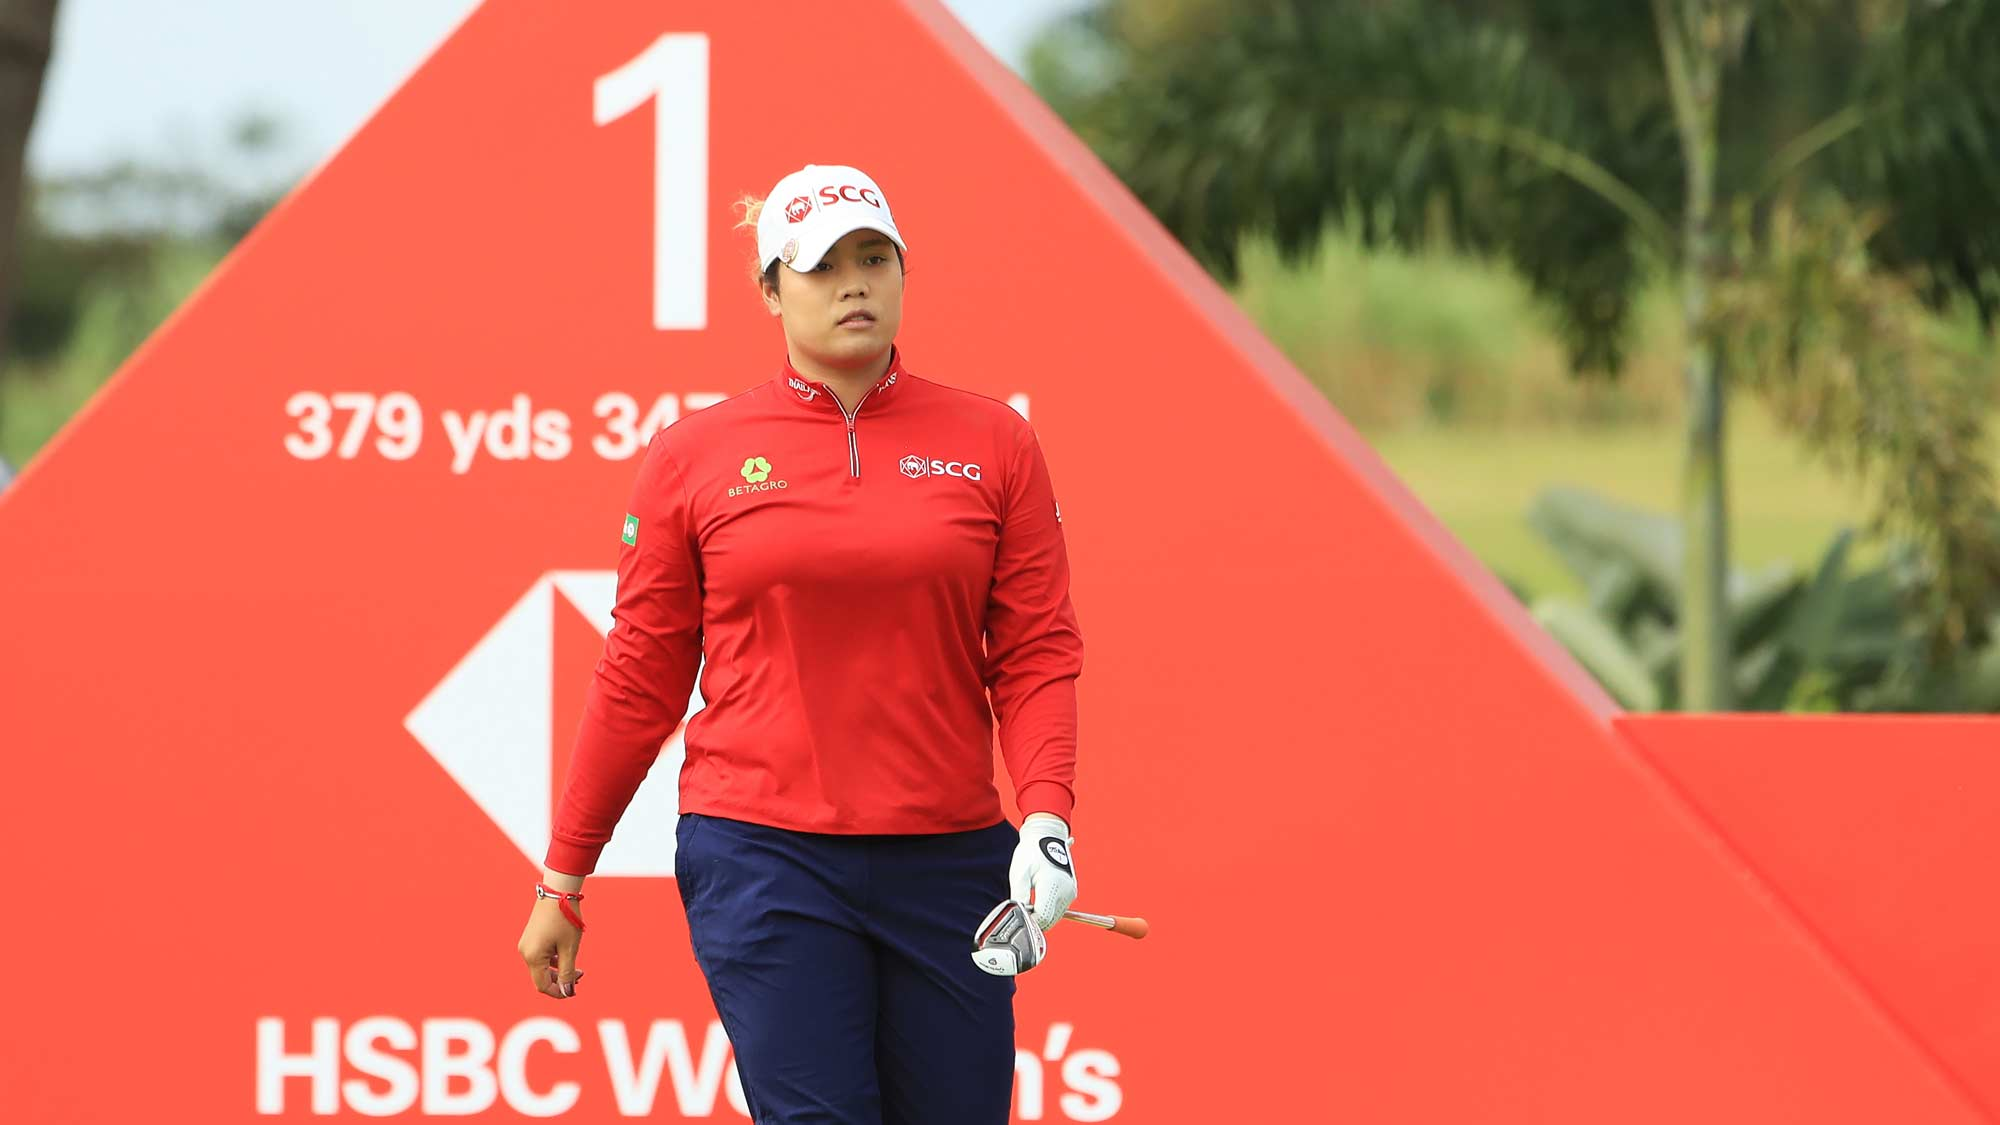 Ariya Jutanugarn of Thailand walks from the first tee during the third round of the HSBC Women's World Championship at Sentosa Golf Club on March 02, 2019 in Singapore.